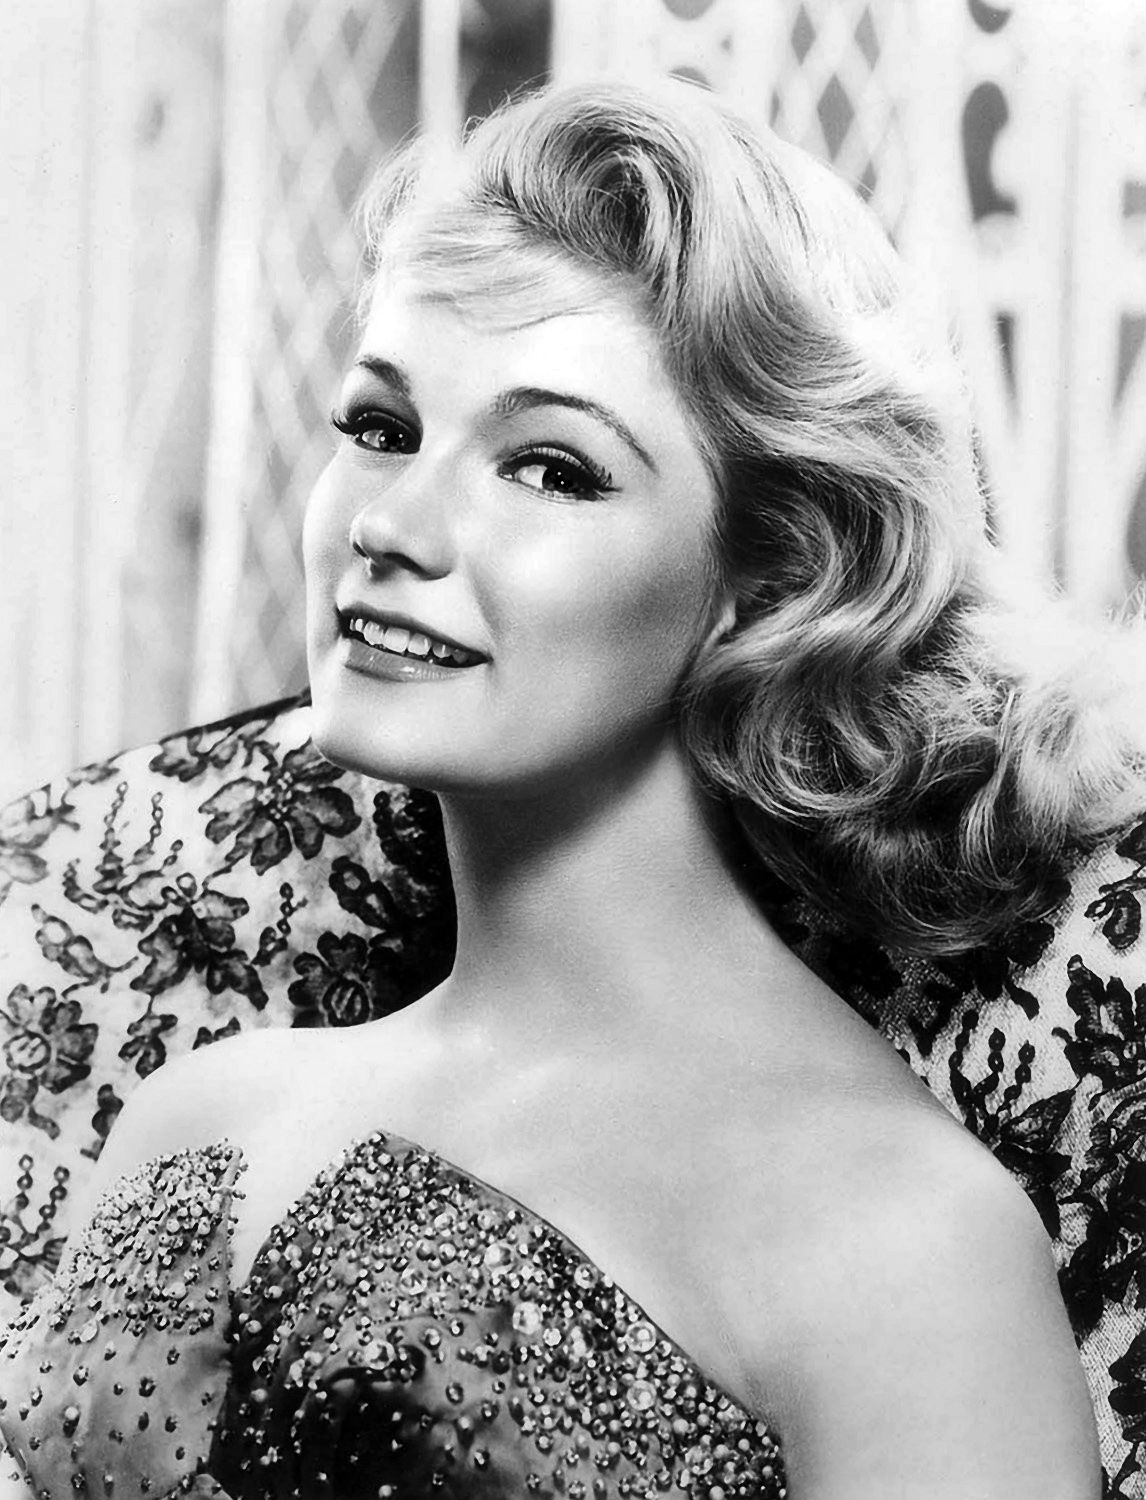 Yvette Mimieux Is A Movie And Television Actress Yvette Carmen Mimieux Was  Born In Los